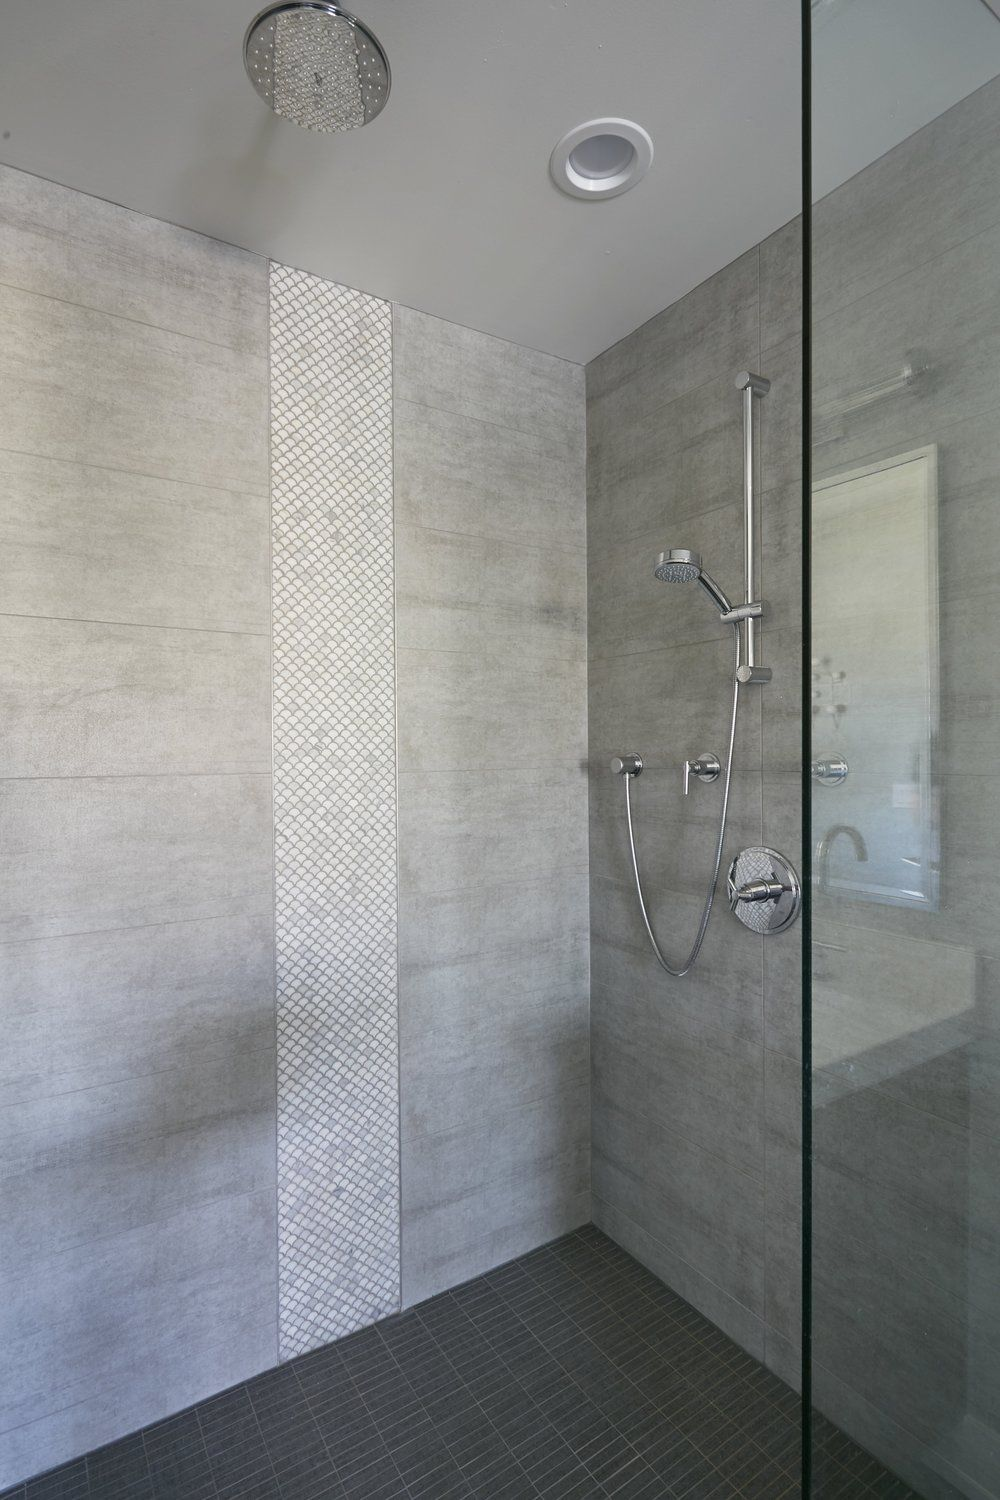 Marble Scallop Tile Marble Fan Tile Master Bathroom Idea